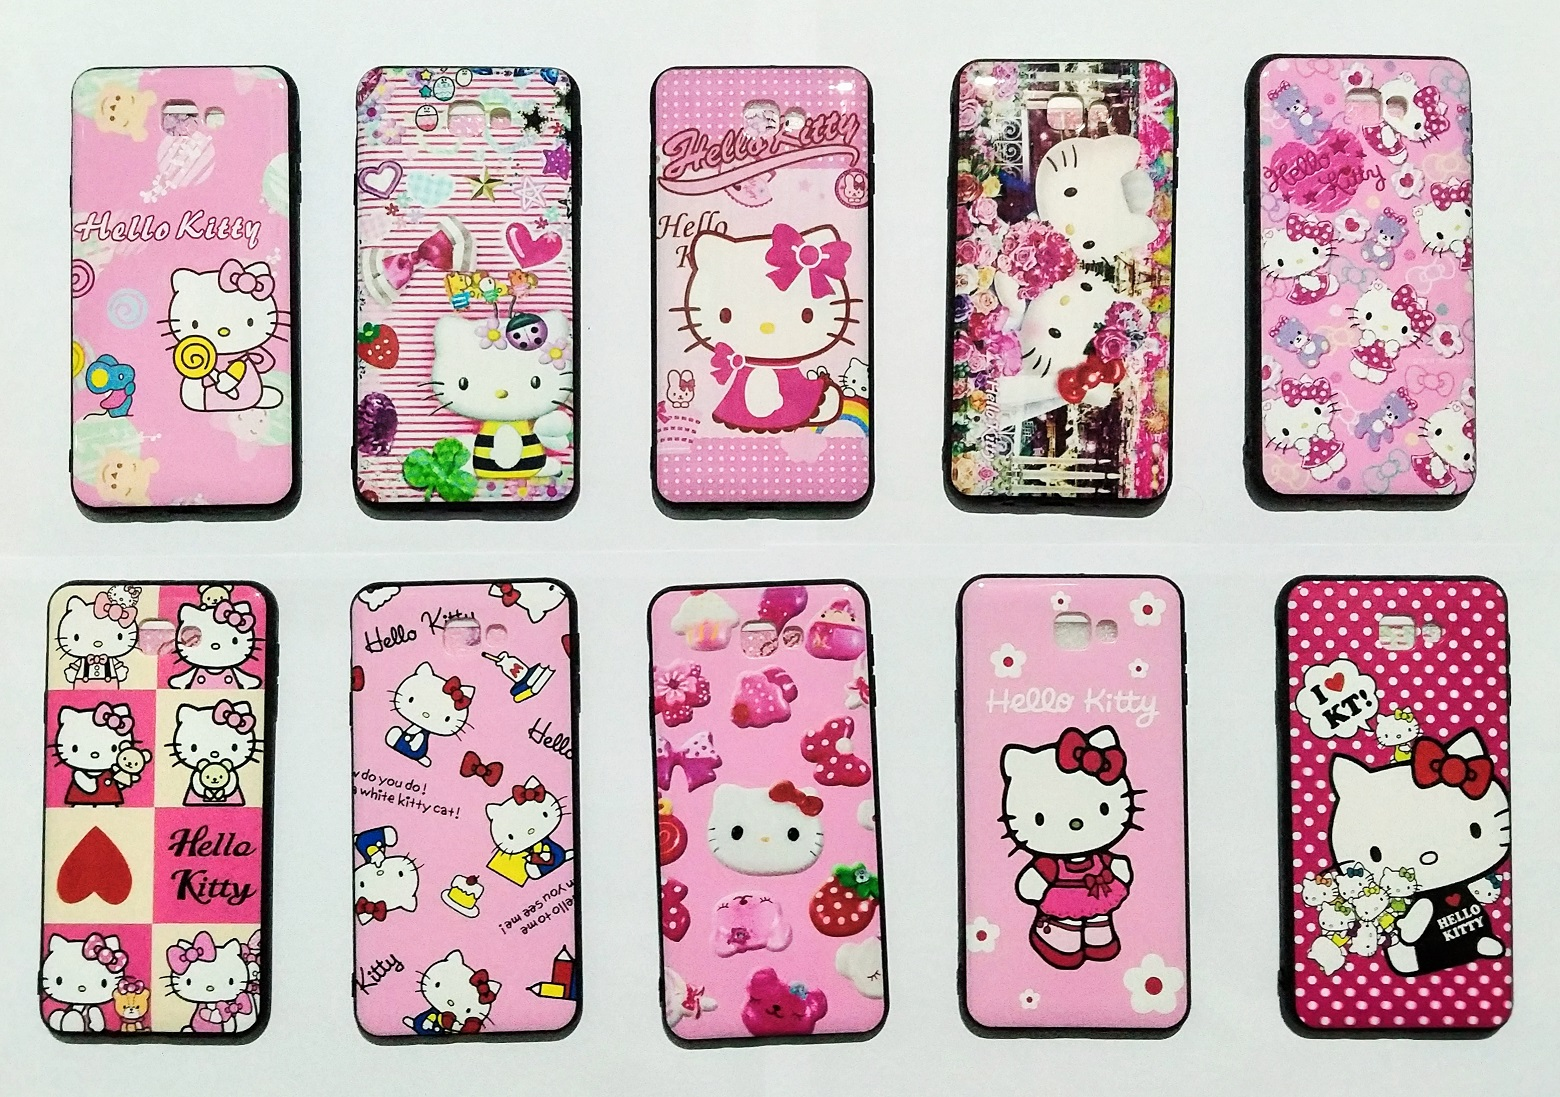 samsung j7 prime casing hp/hardcase/fashioncase/softcase/case hp/case motif hello kitty